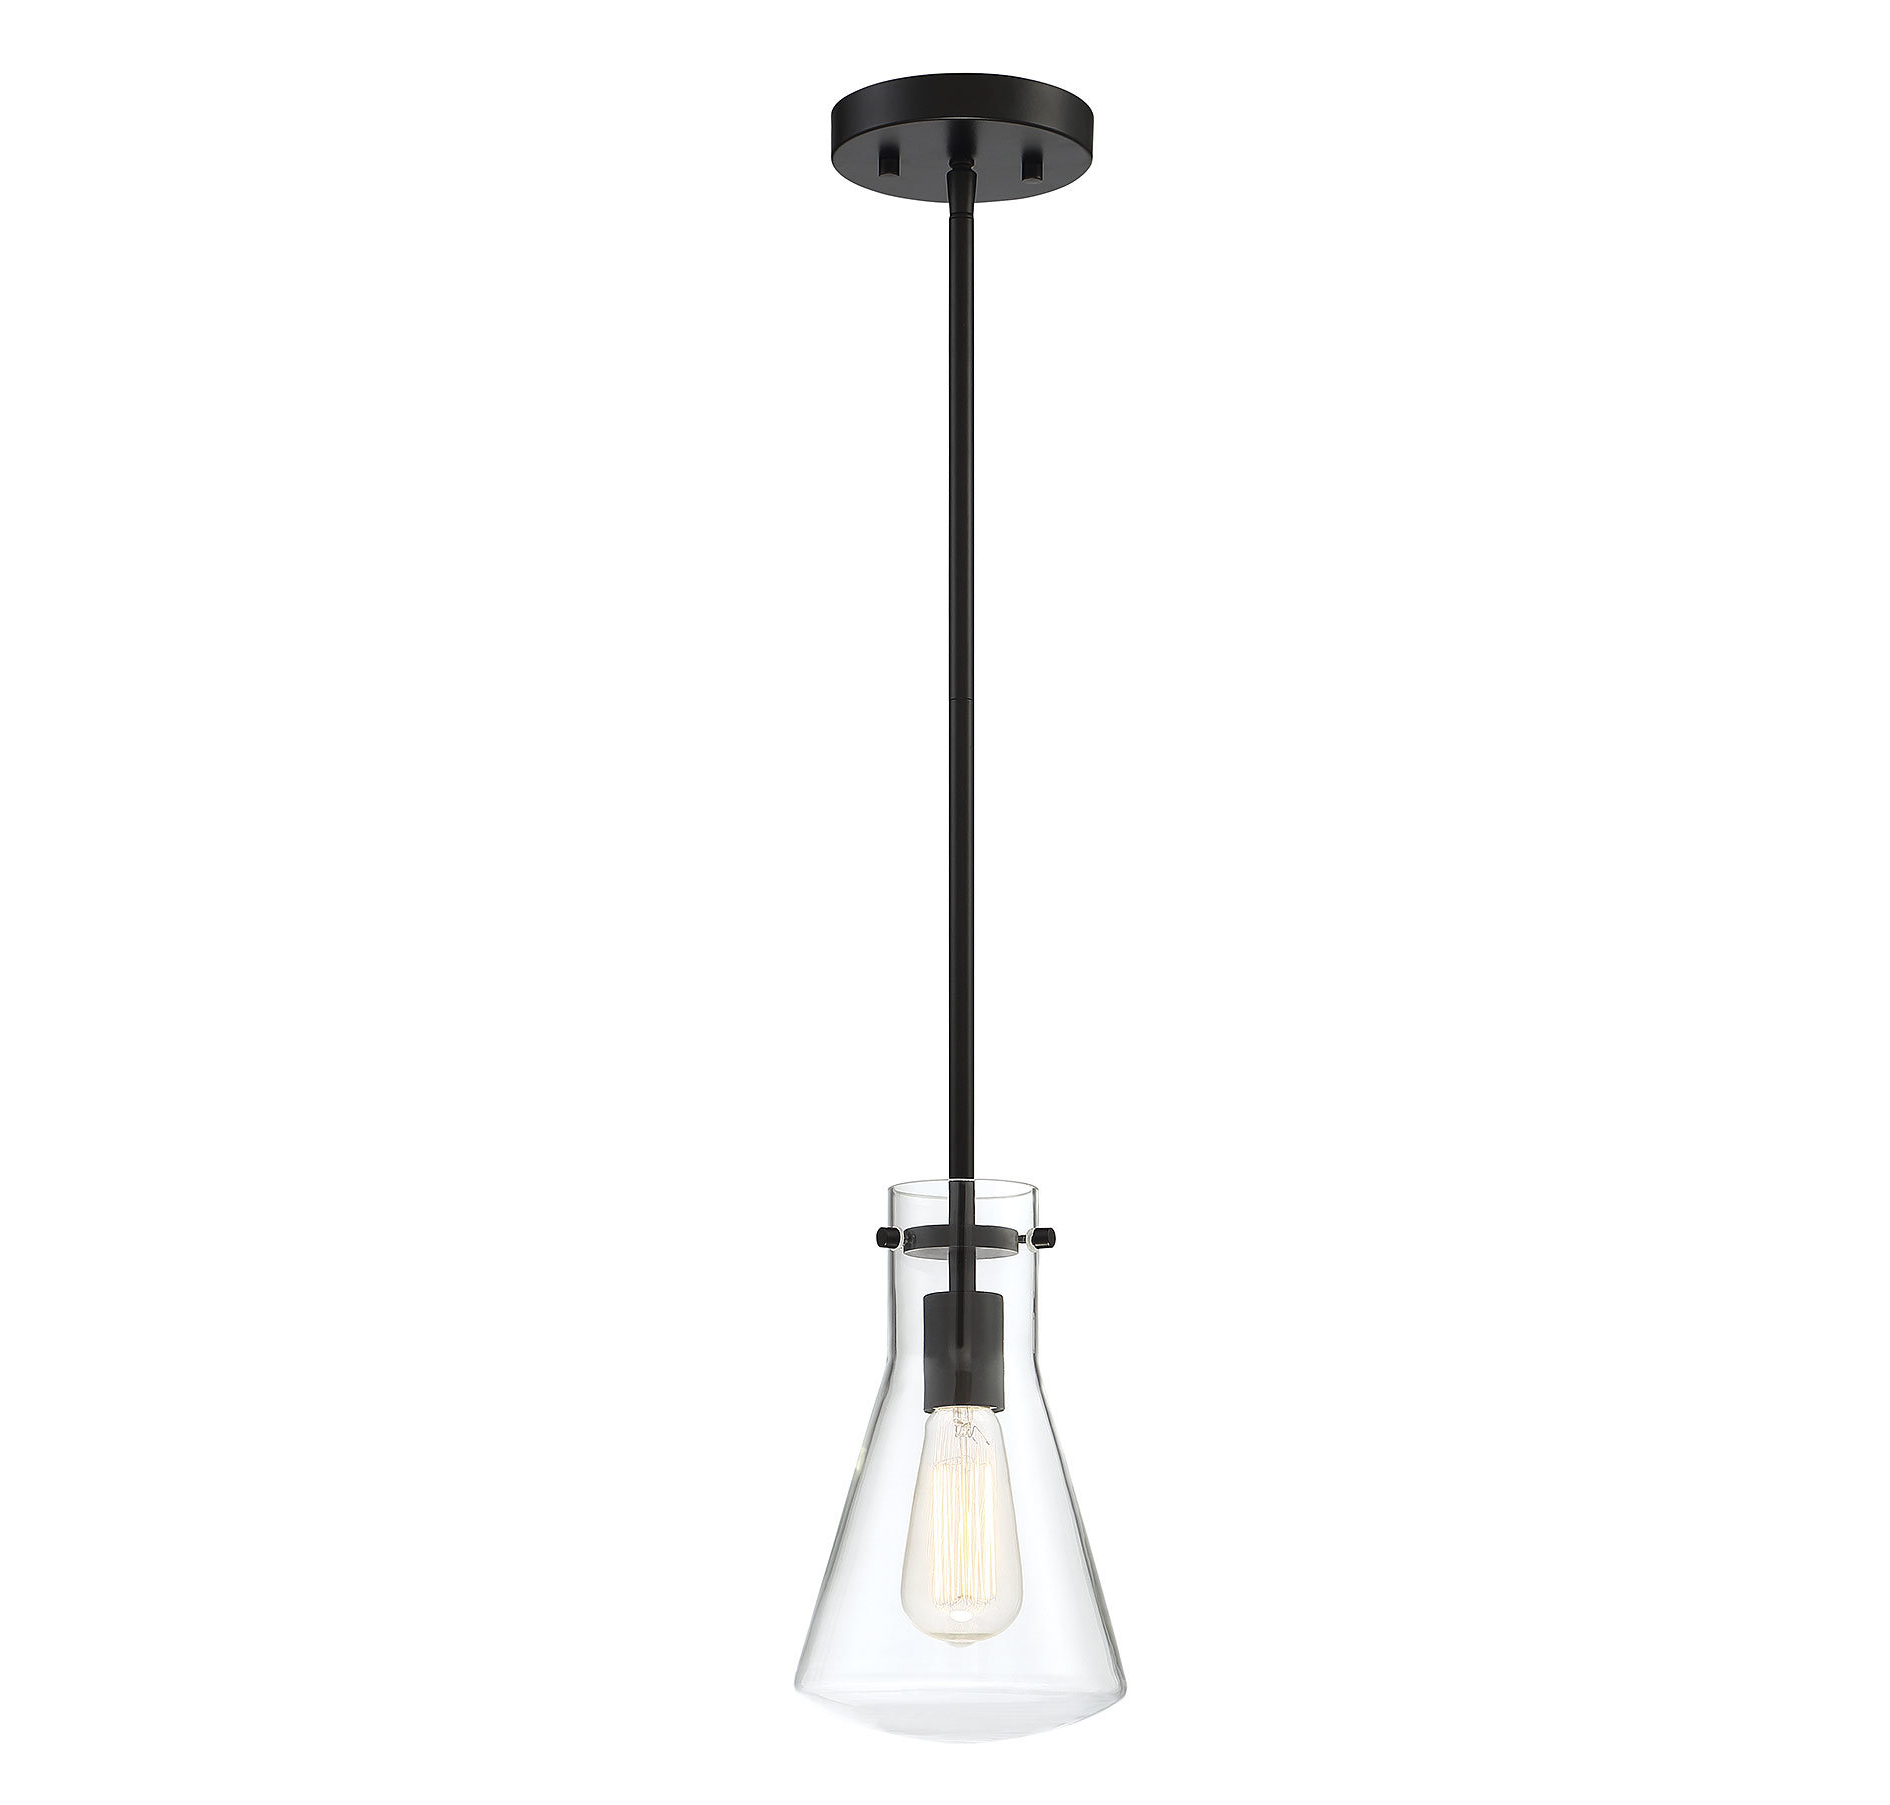 Moyer 1 Light Single Cylinder Pendants Throughout Fashionable Enciso 1 Light Single Cone Pendant (View 13 of 25)